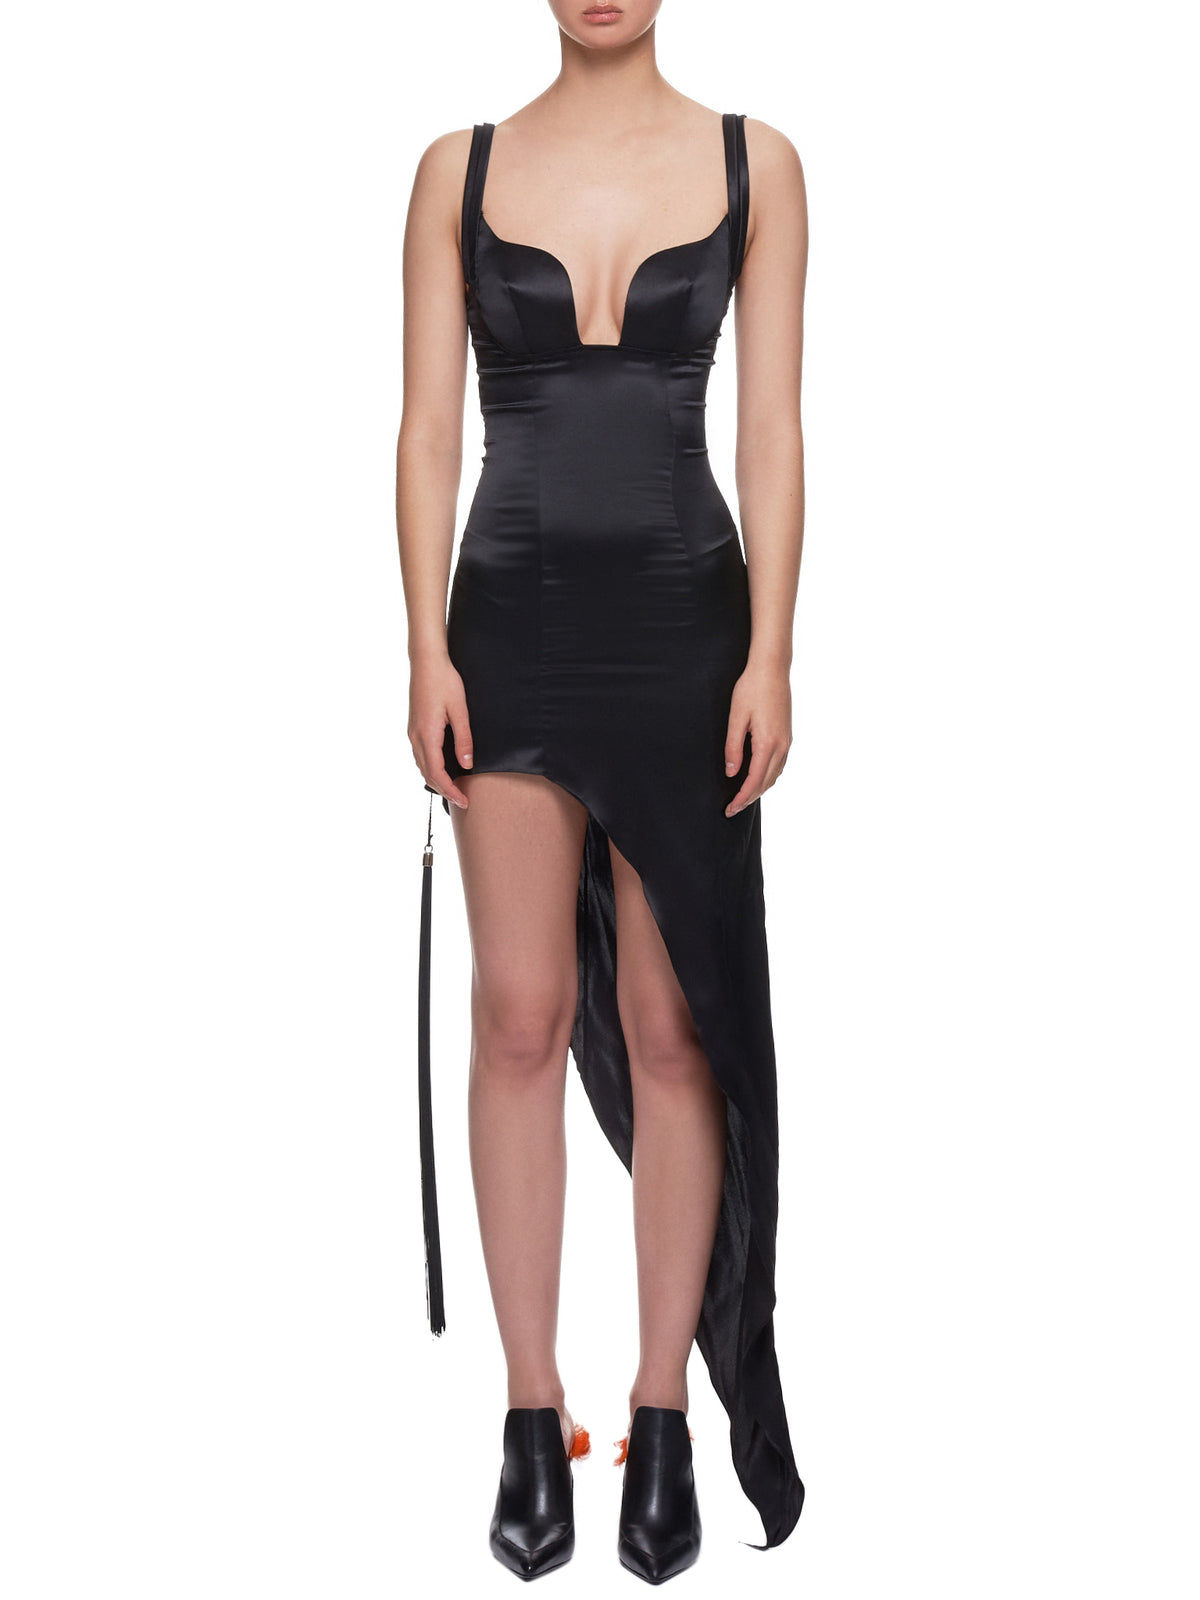 Vamp Dress (VAMP-BLACK)